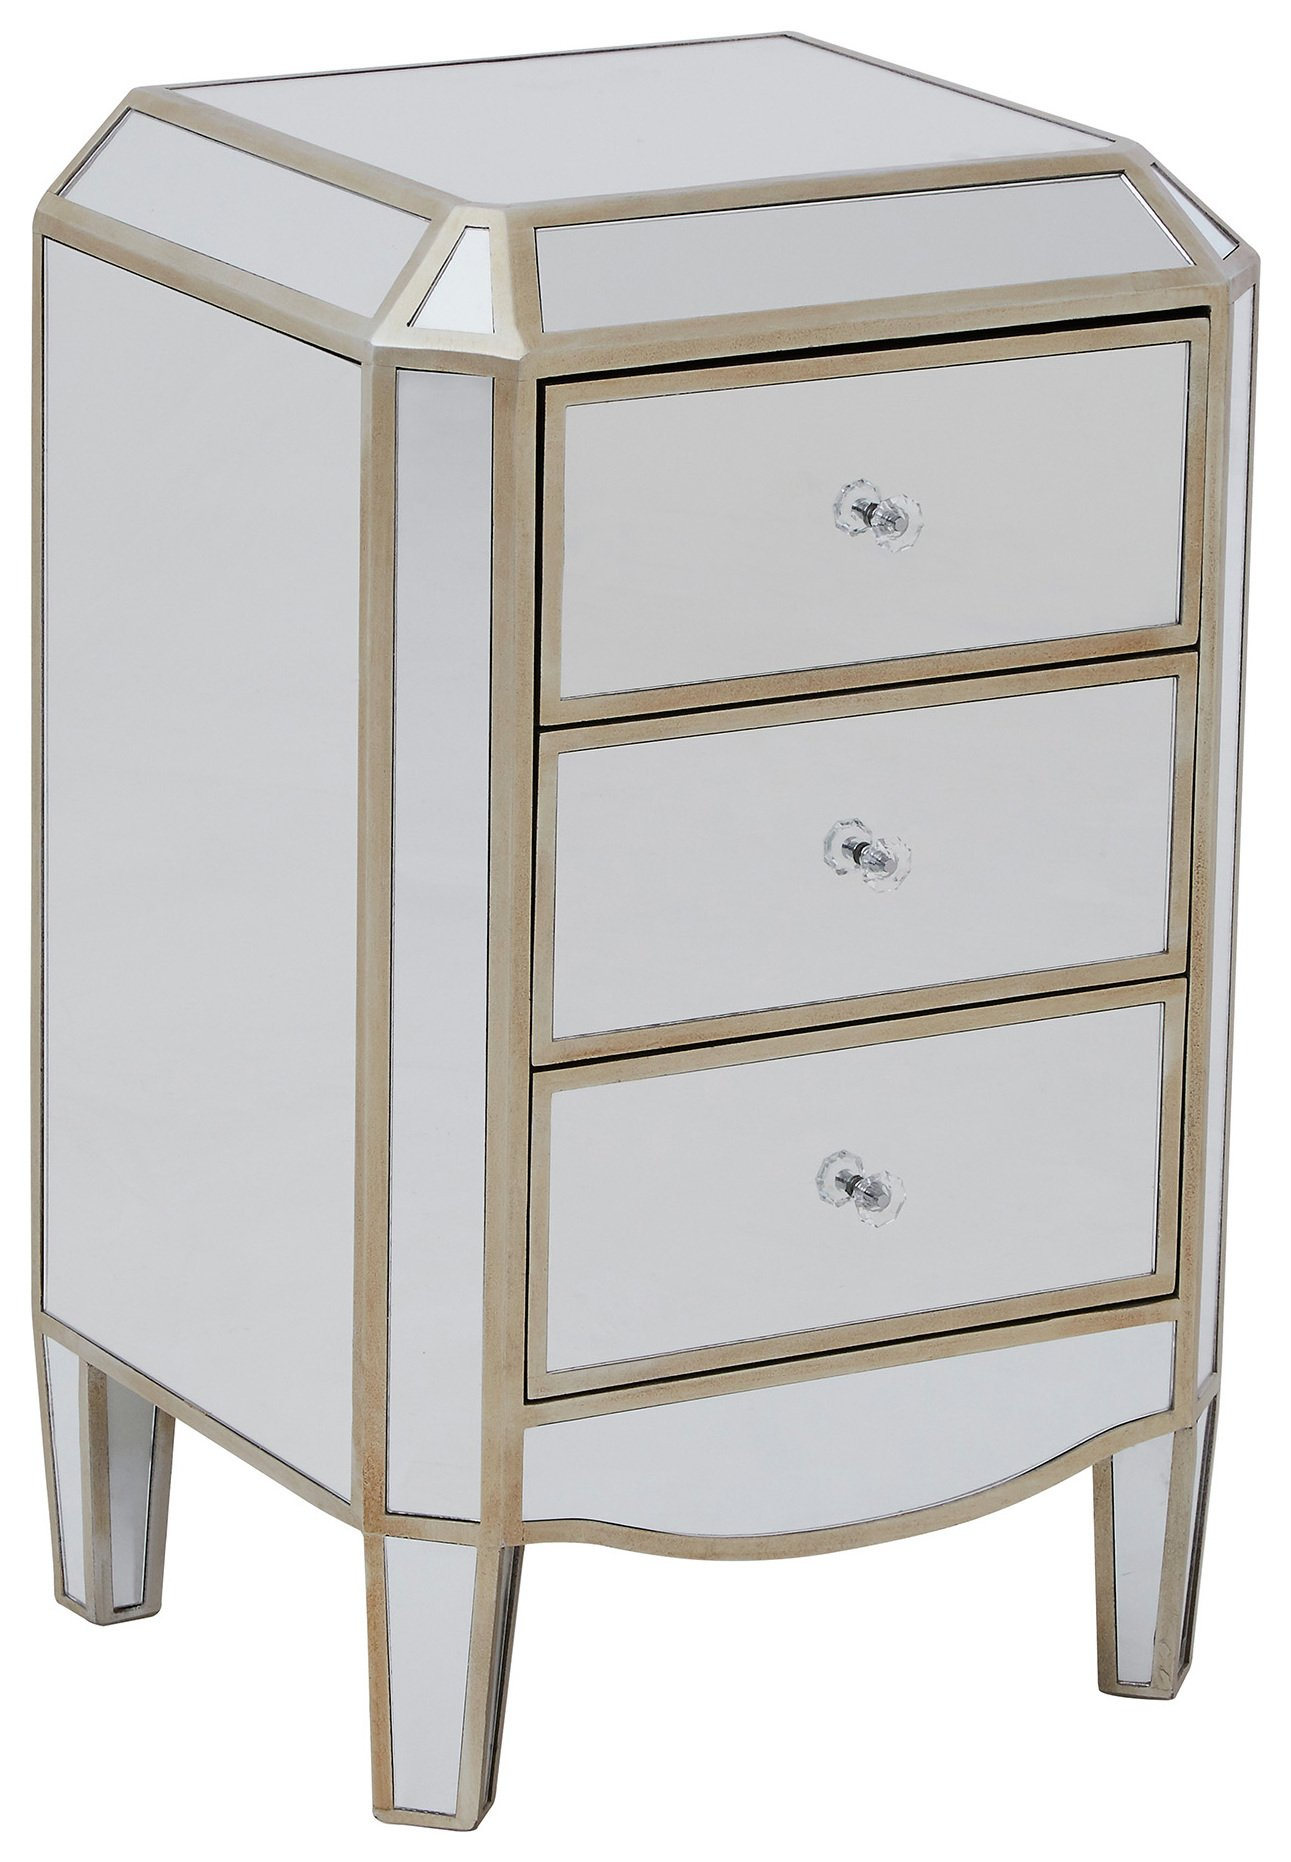 Premier Housewares Tiffany Mirrored 3 Drawer Chest. at Argos from Premier housewares